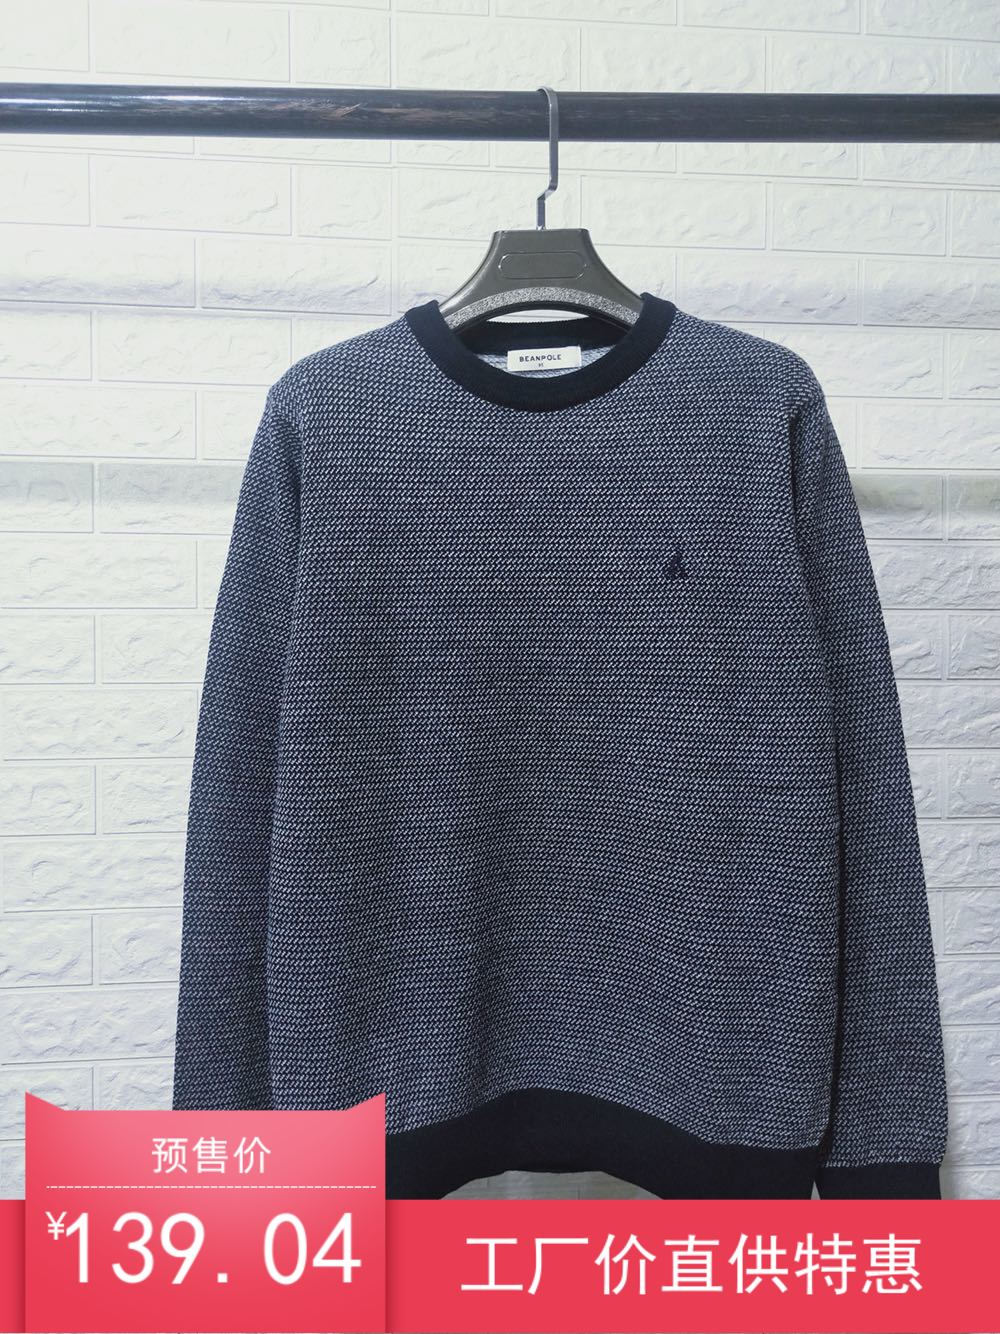 Fall and winter versatile Korean BP classic crew neck design mens pure wool sweater T-shirt